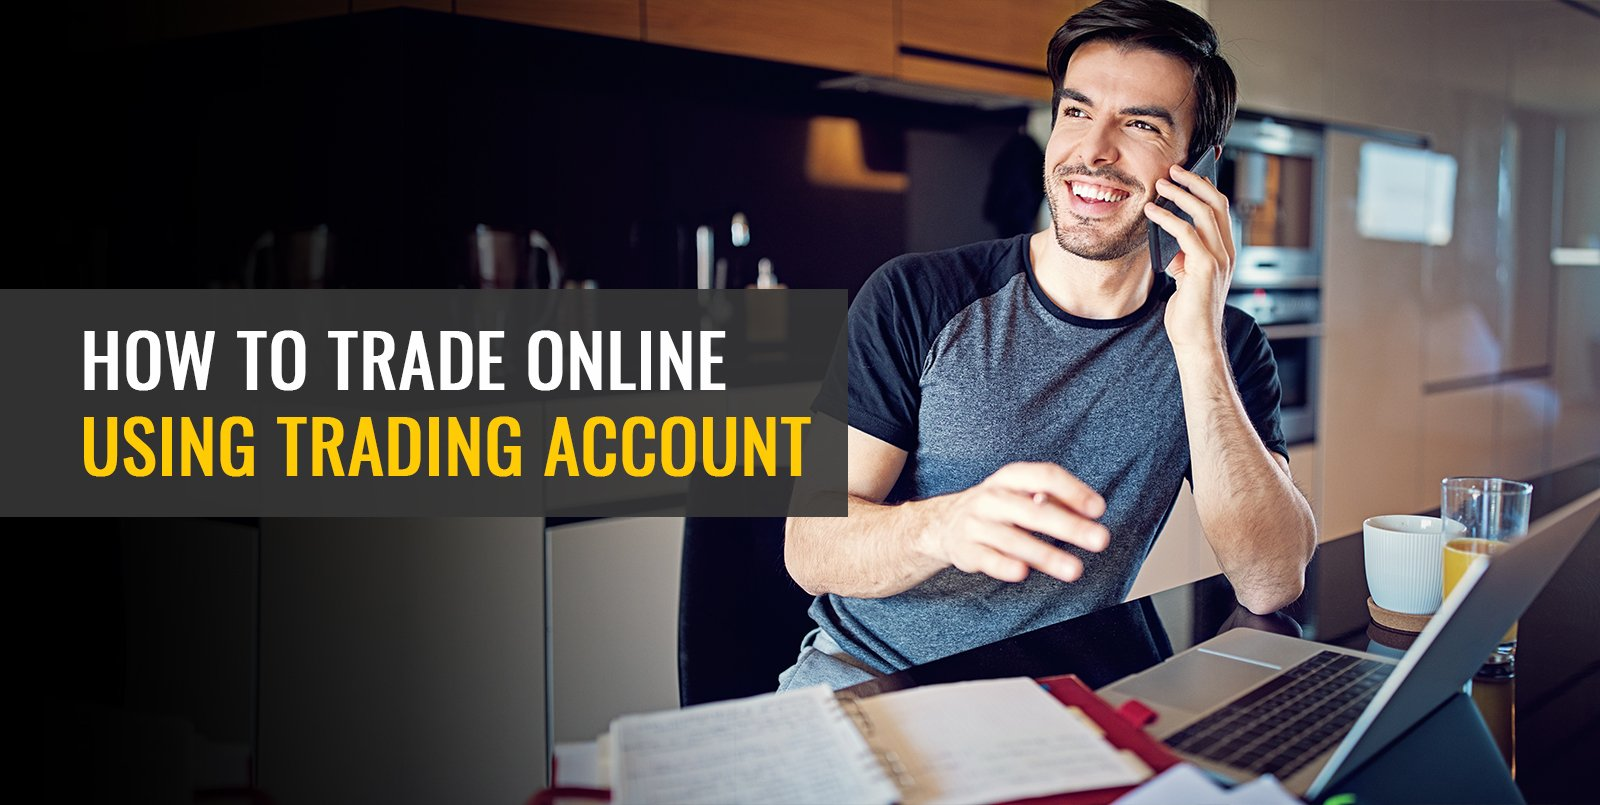 How to Trade Online Using Trading Account